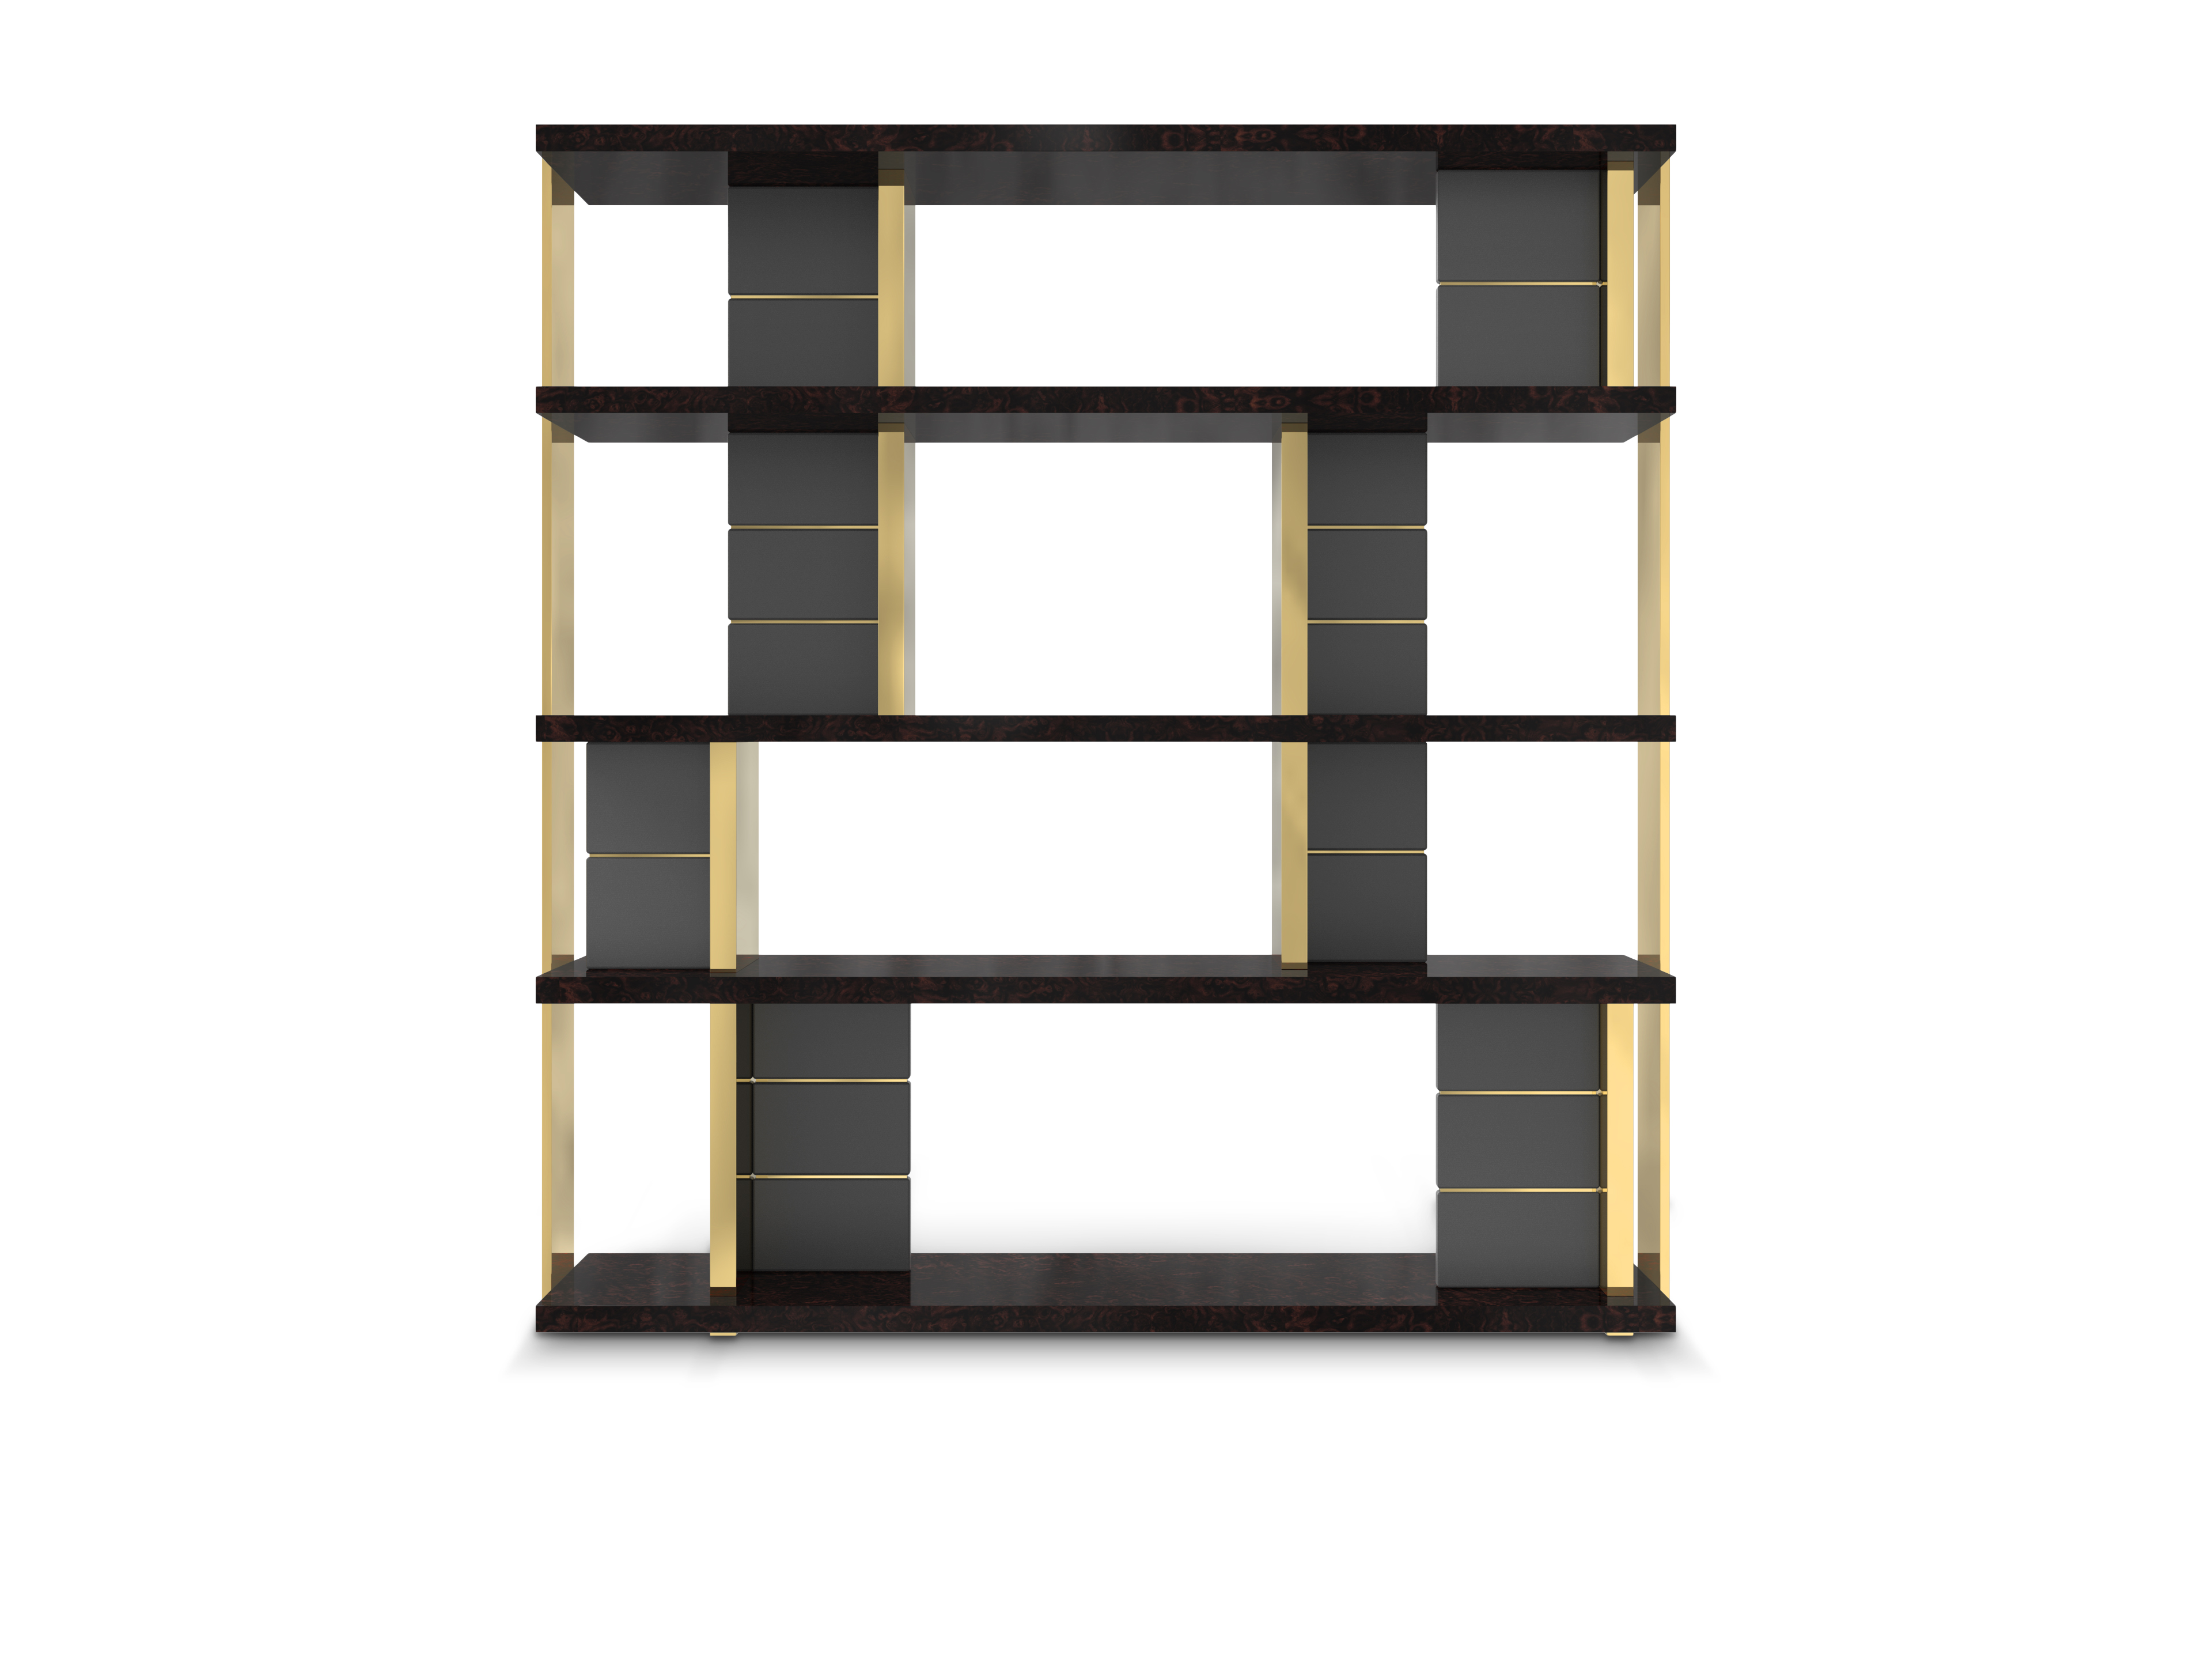 Lloyd Bookcase: Exquisite Luxury Design lloyd bookcase Lloyd Bookcase: Exquisite Luxury Design LLOYD bookcase front